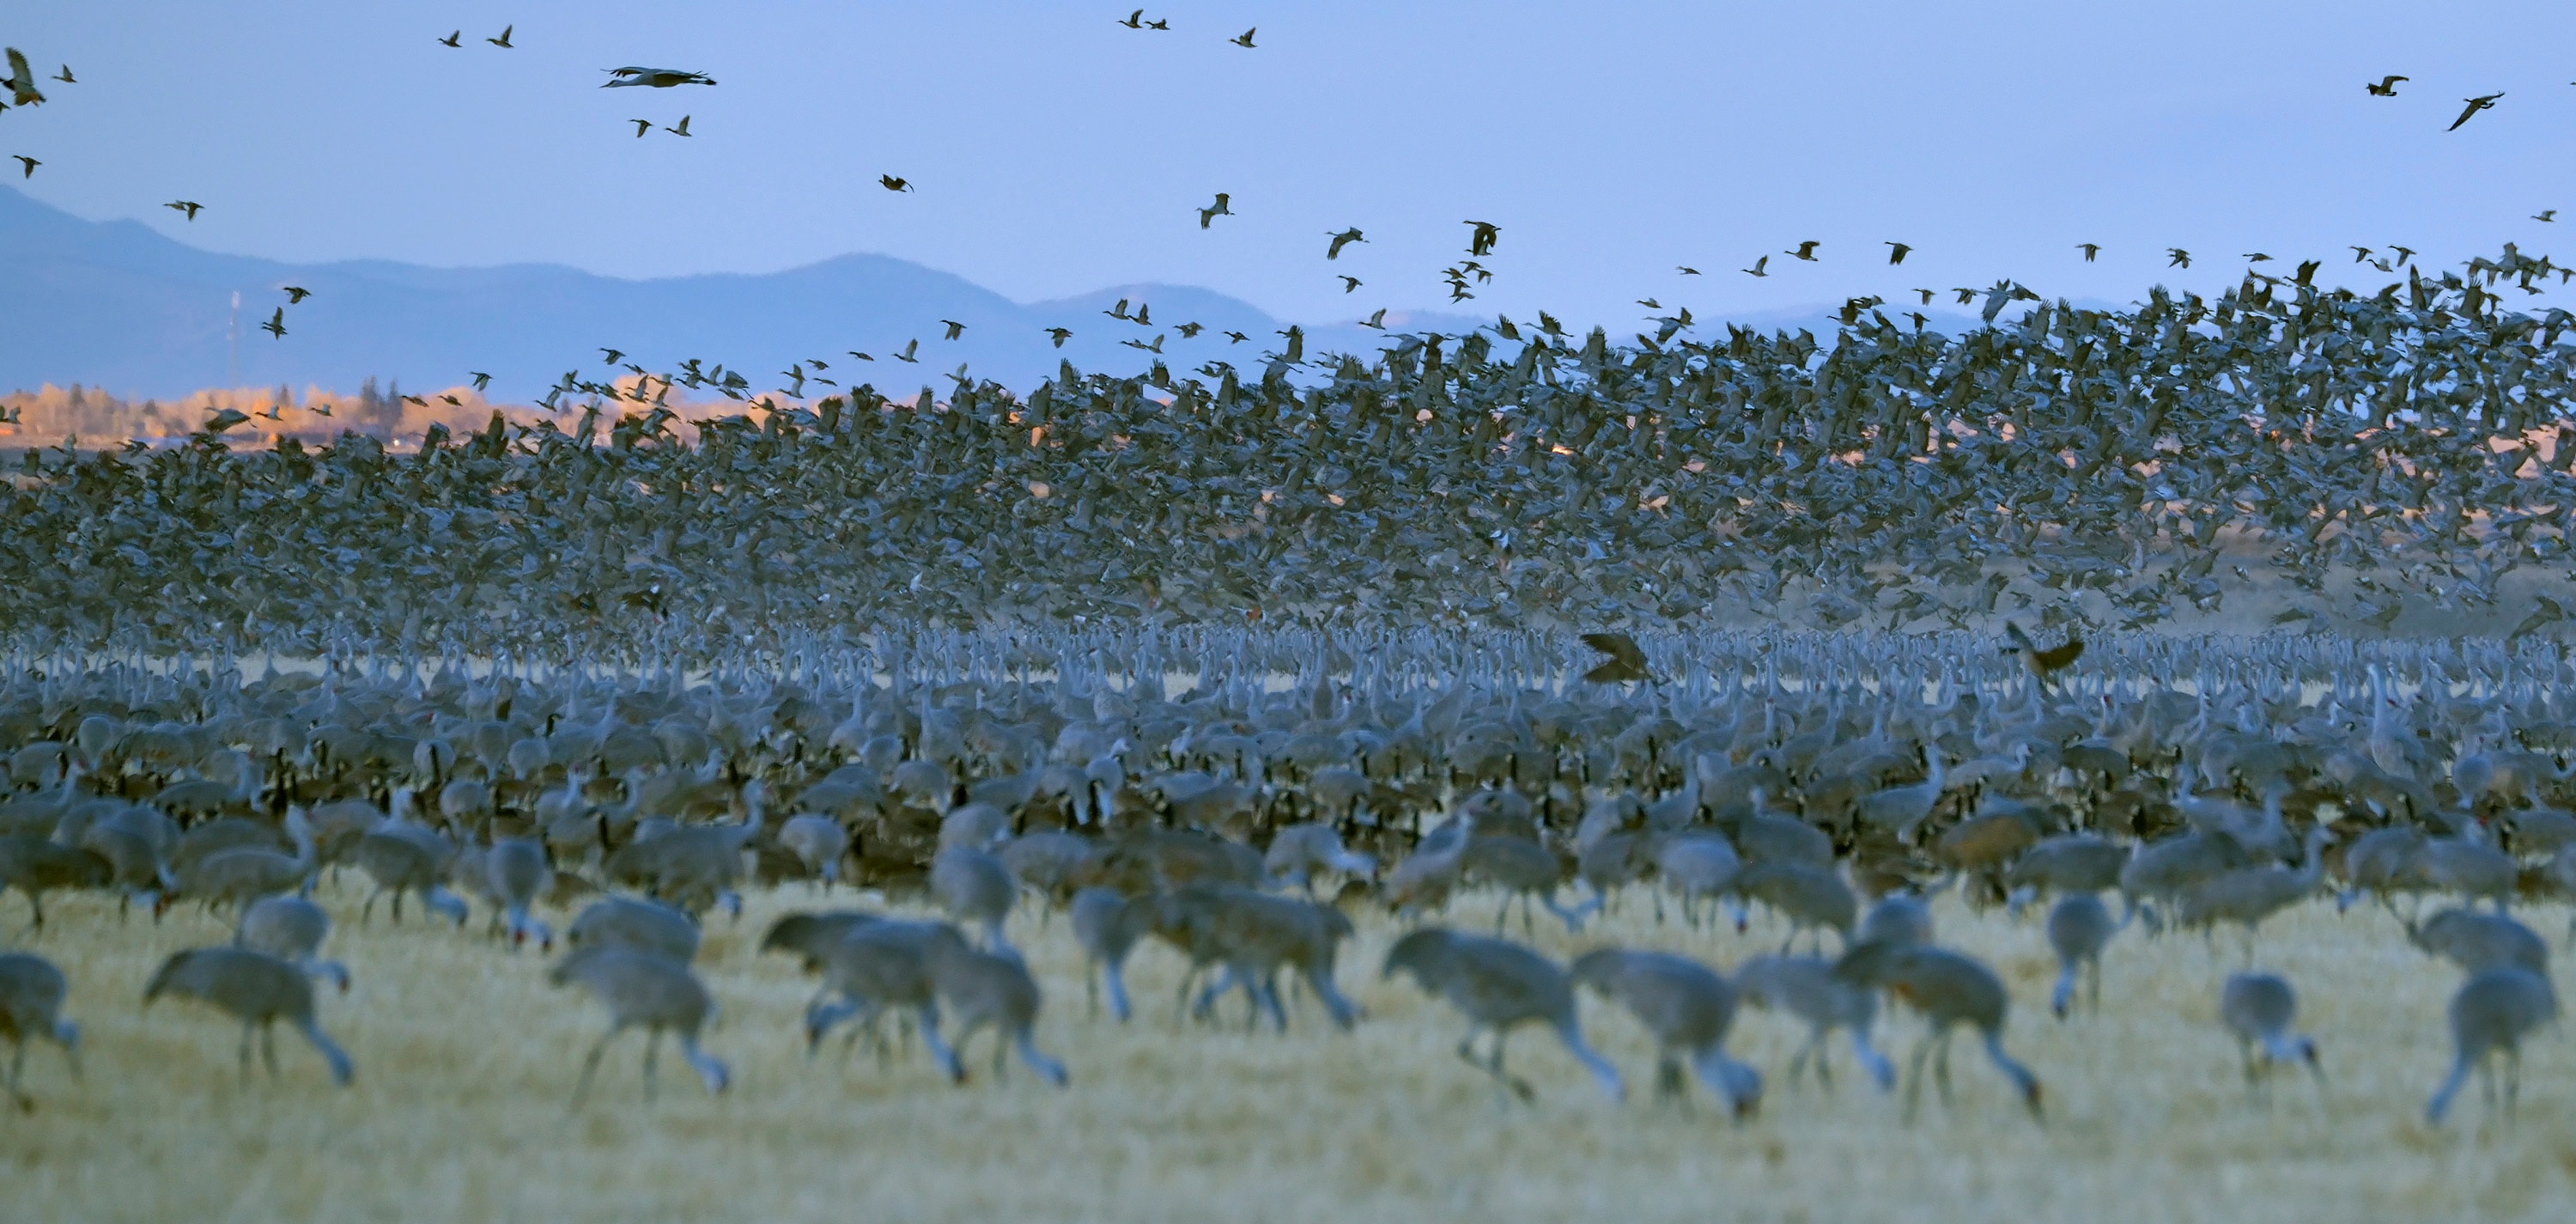 <div class='title'>           Sandhill Cranes         </div>                 <div class='description'>           A mass takeoff of Greater Sandhill Cranes         </div>